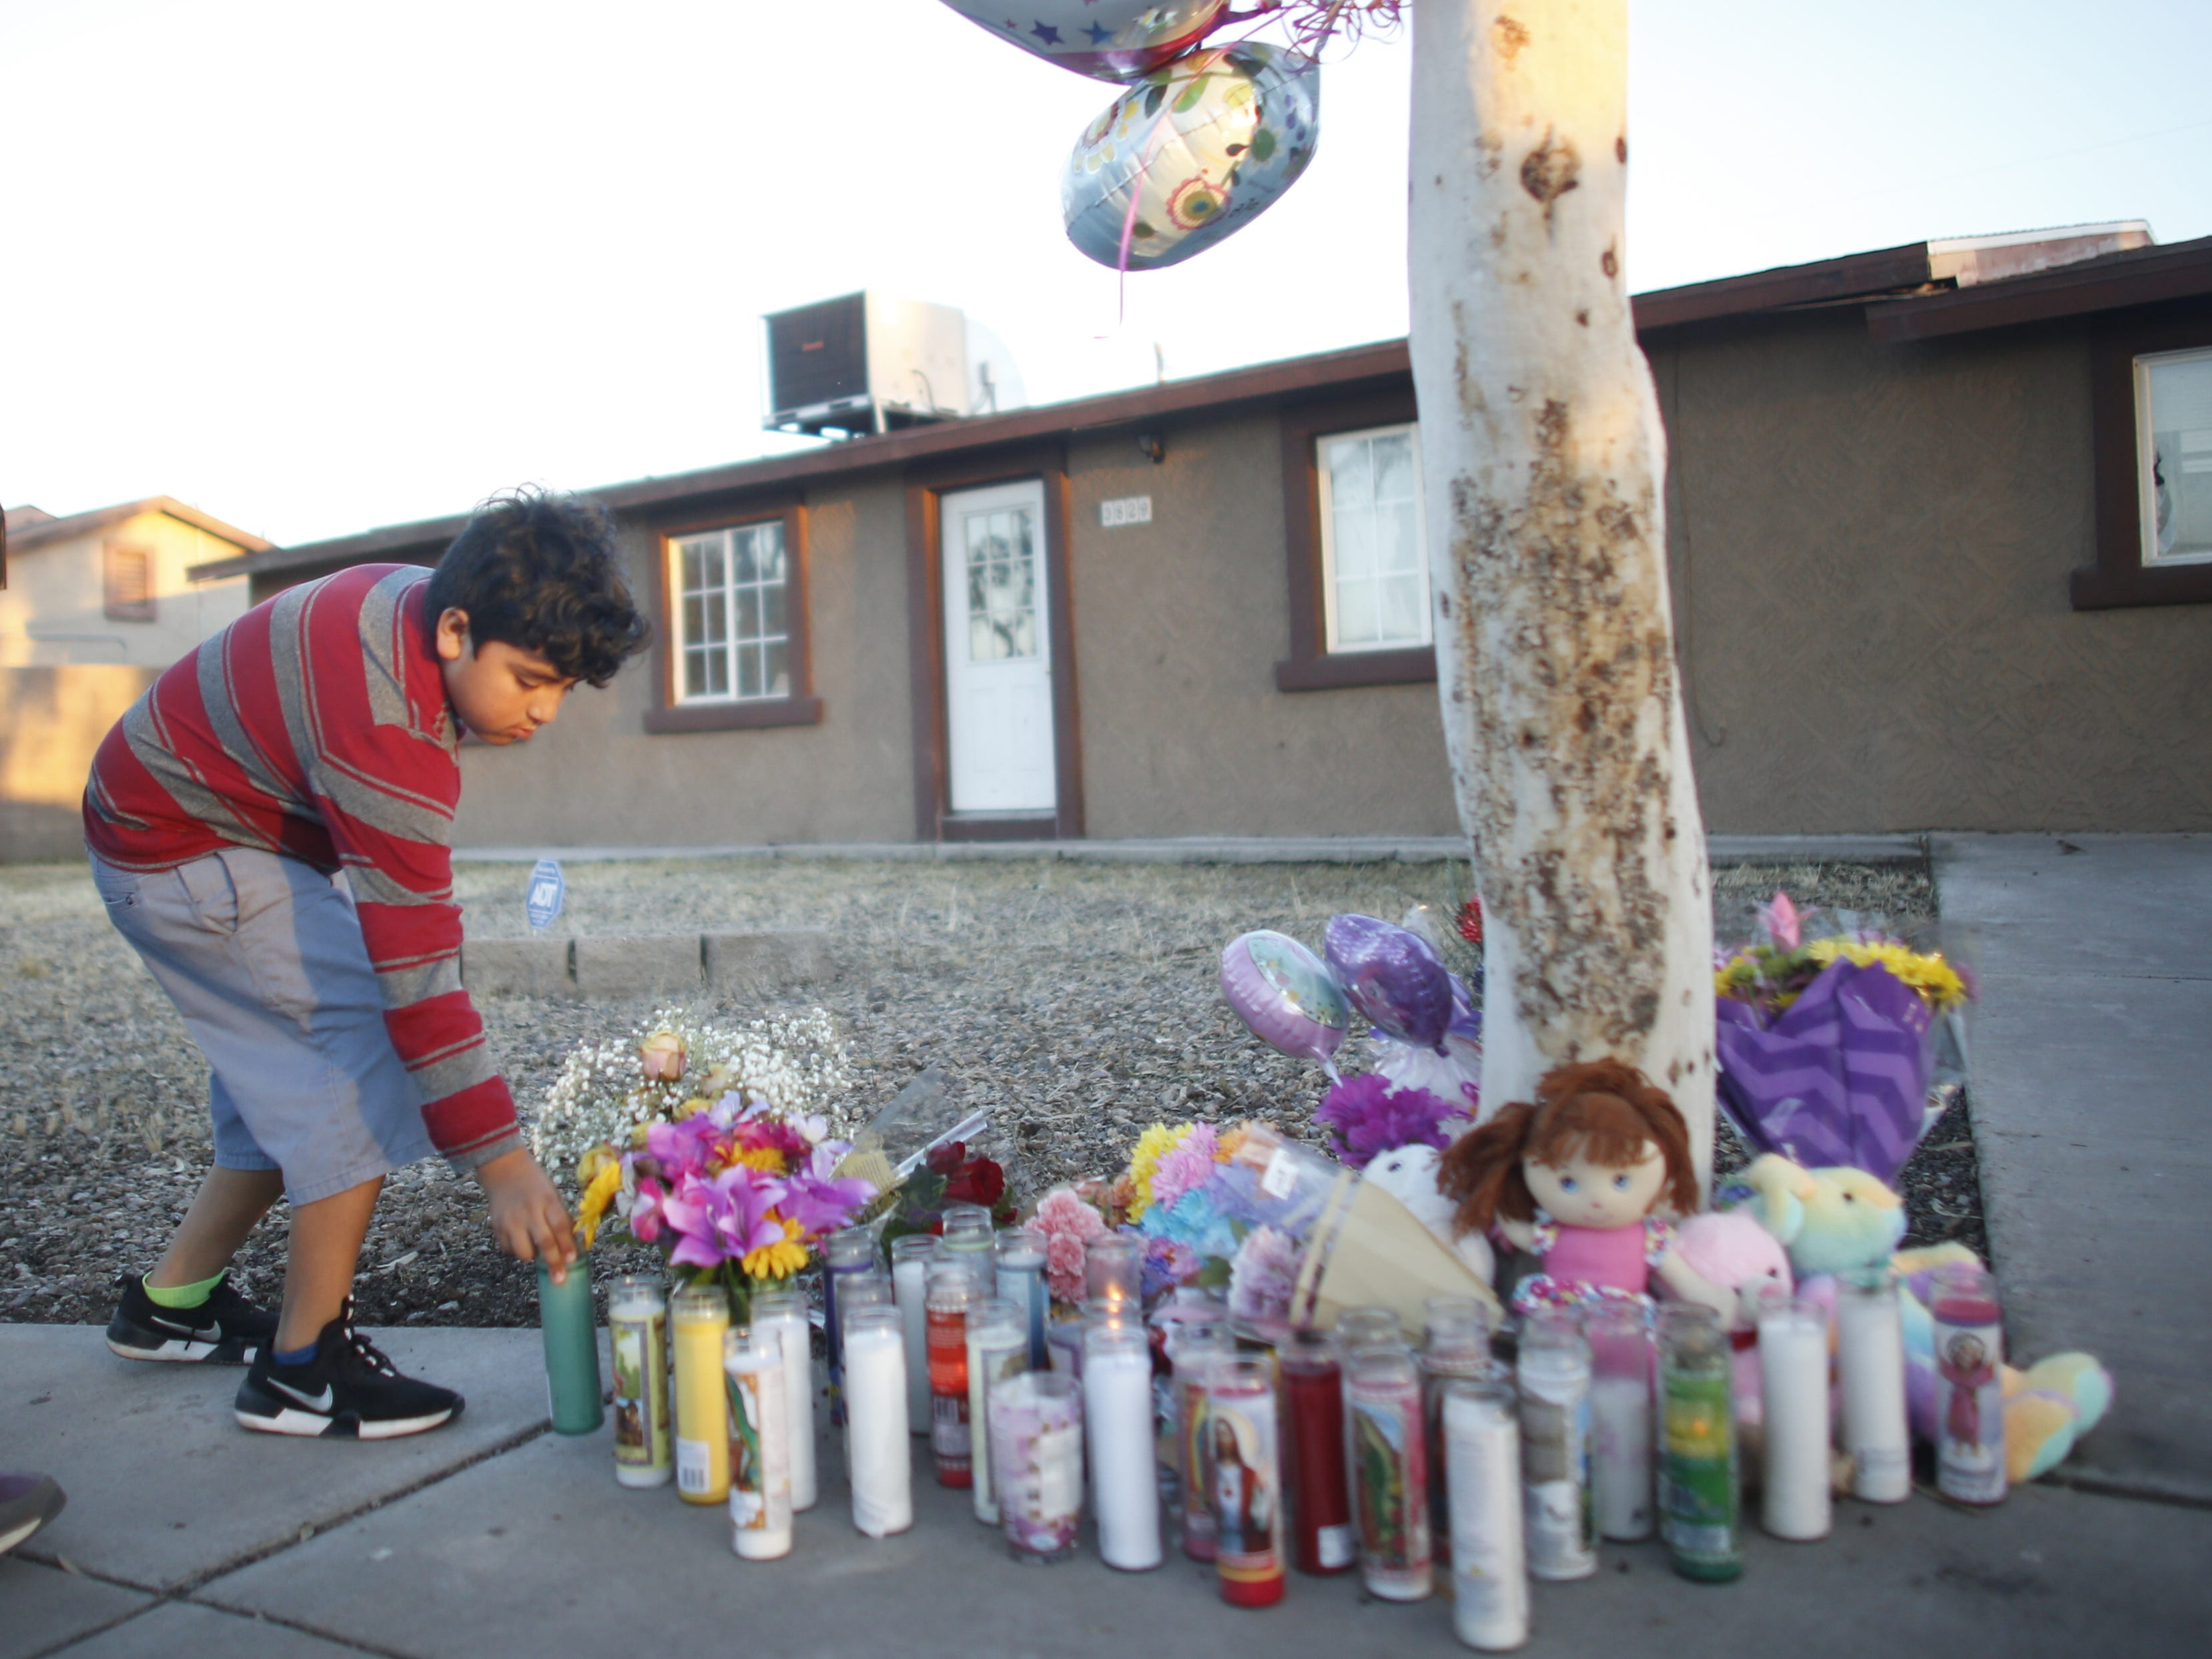 Jose Vargas places a candle at a vigil for Summer Bell Brown on April 5, 2019, outside her home where she was shot and killed in Phoenix.